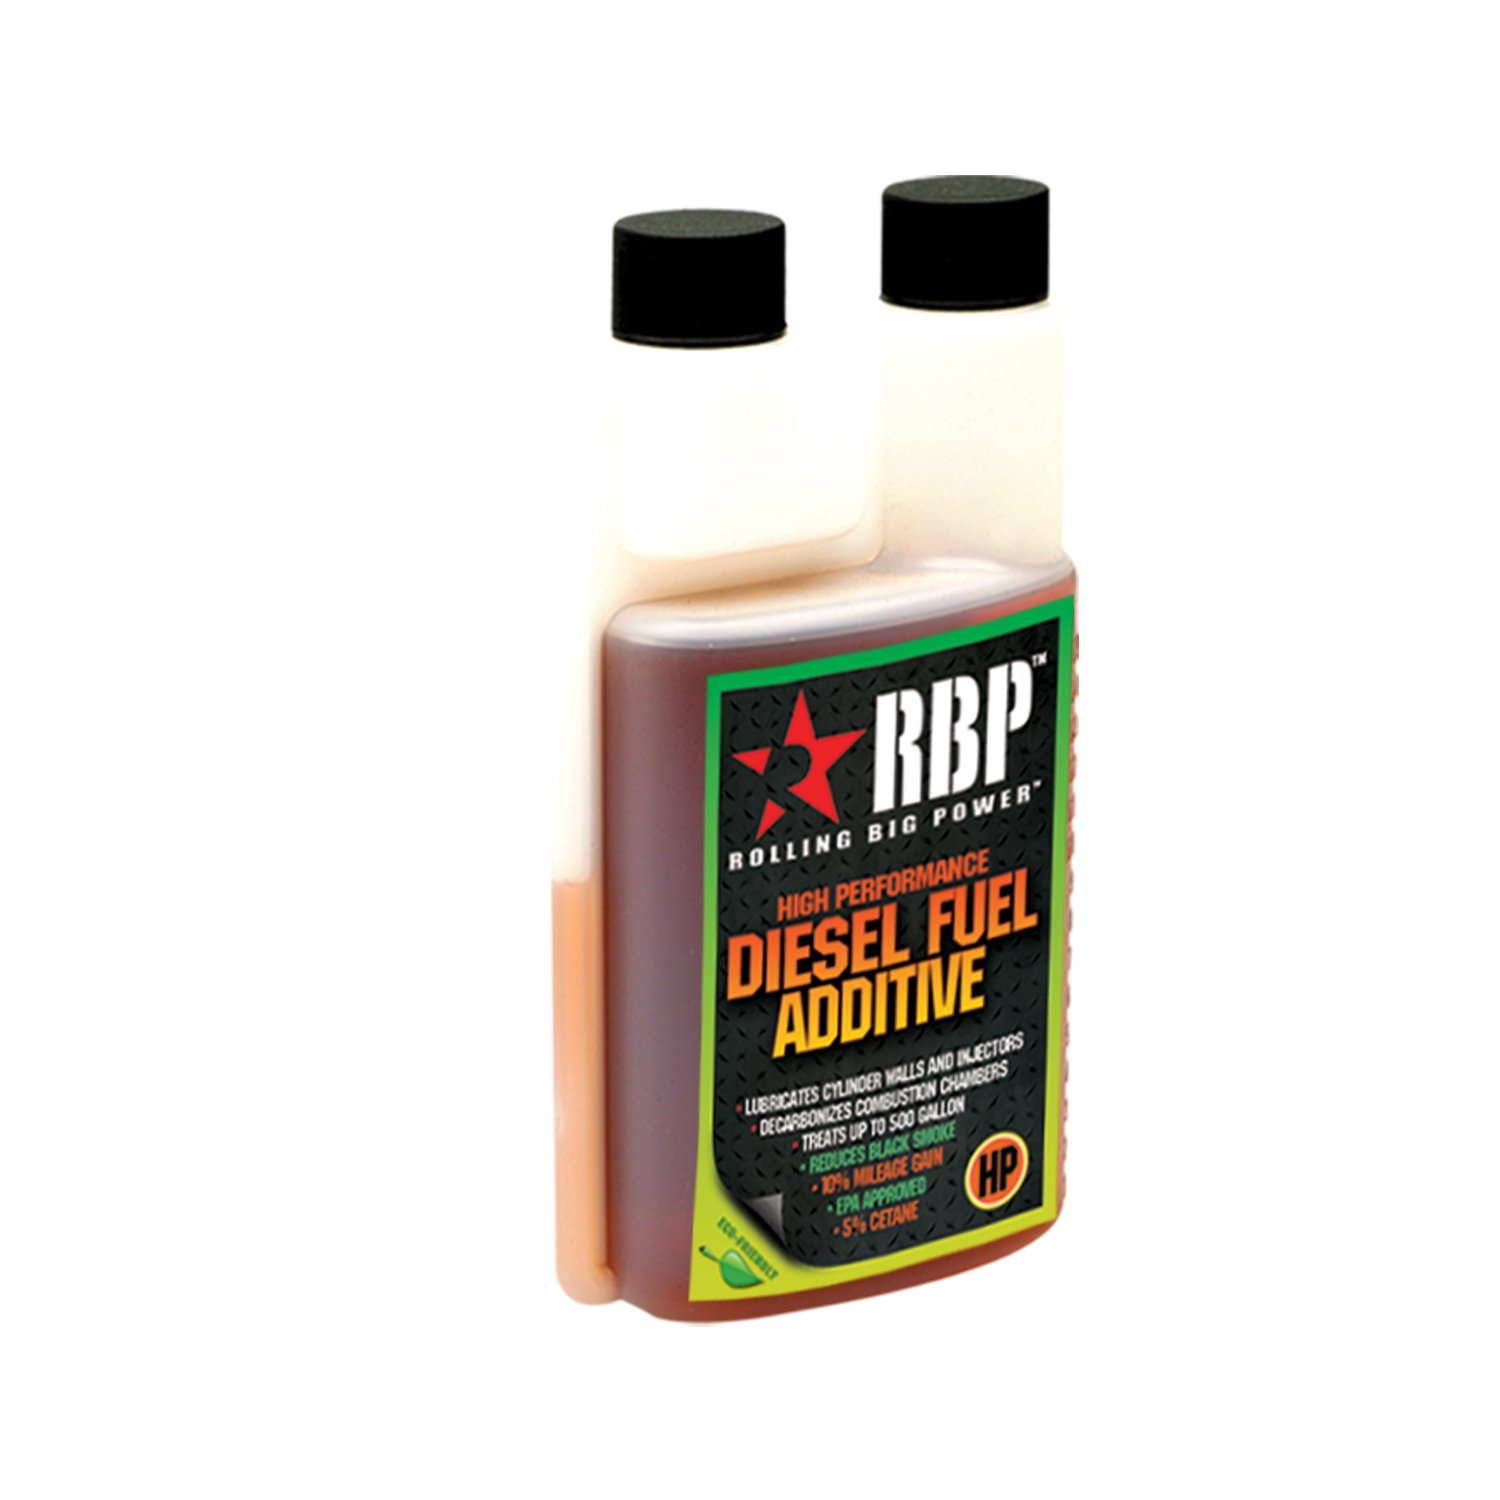 RBP RBP-80001HP 16 oz. High Performance Fuel Additive with Cetane for All Diesel Engines